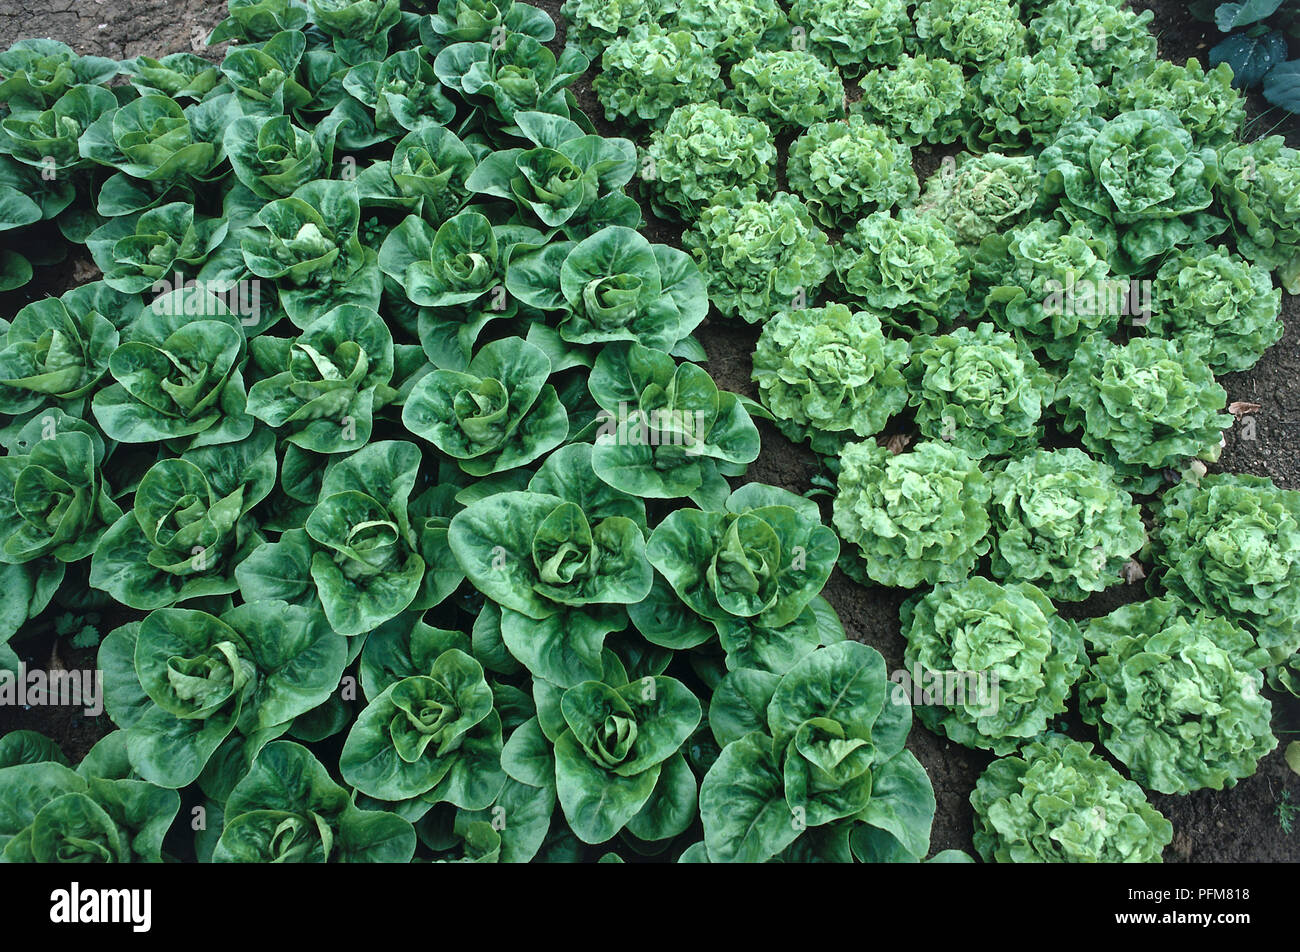 Above view of planted lettuce showing how plants sown closely together in staggered rows to maximise available space. - Stock Image